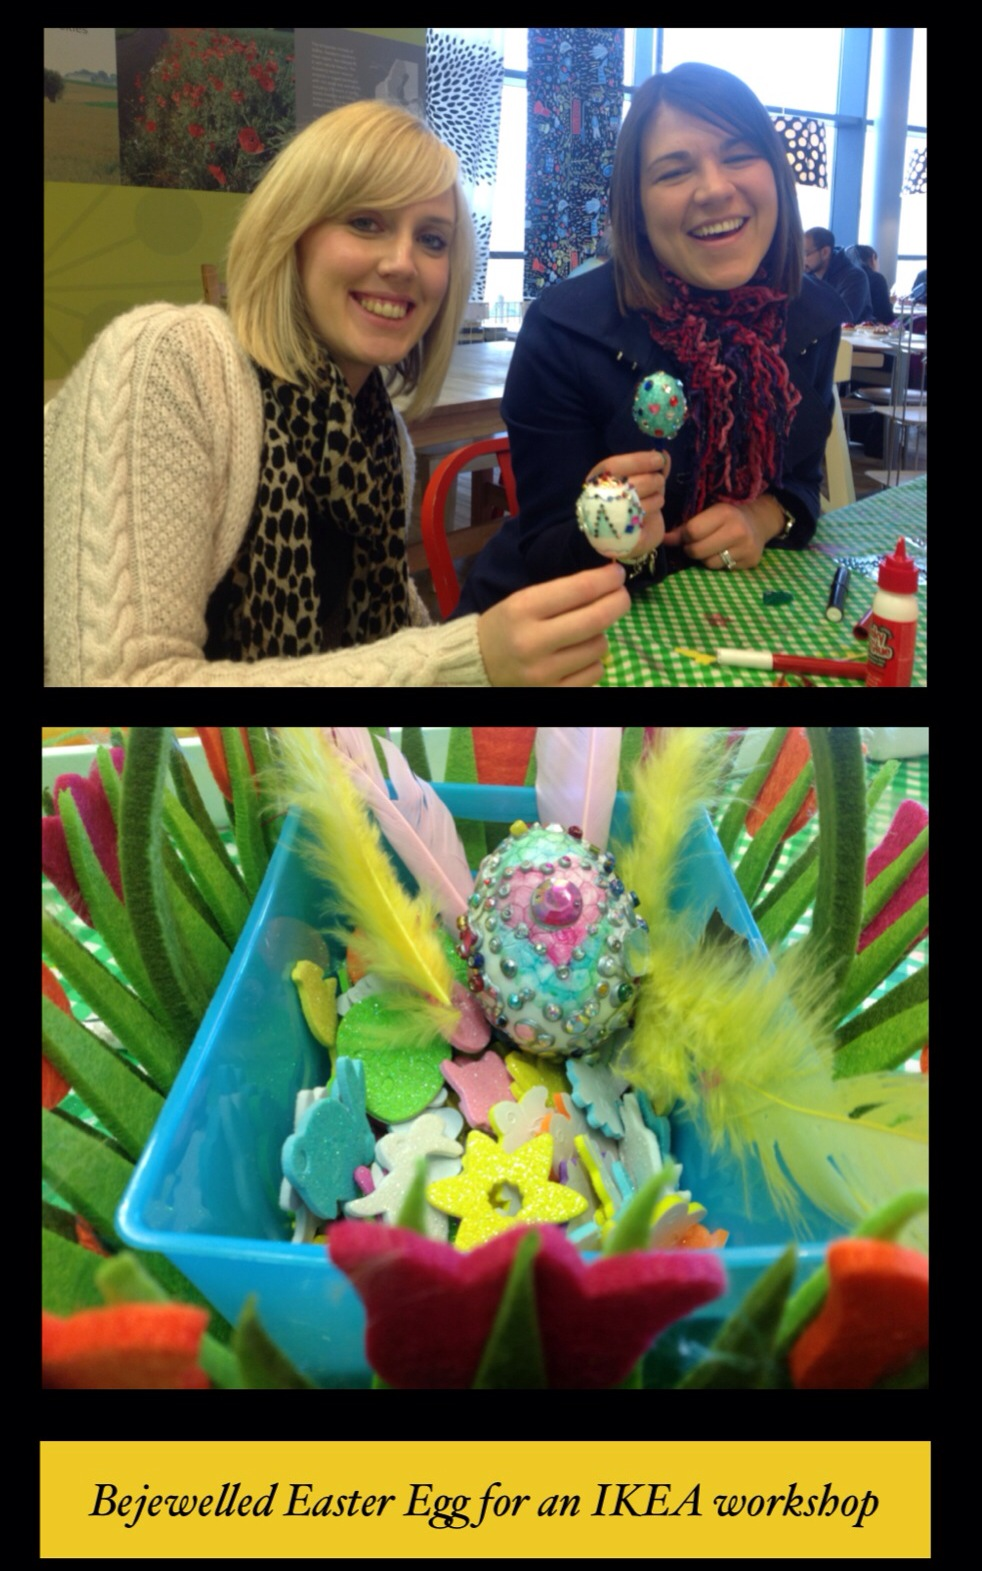 Easter eggs embellished with paint and jewels at an IKEA arts and crafts workshop at IKEA Lakeside Thurrock, UK